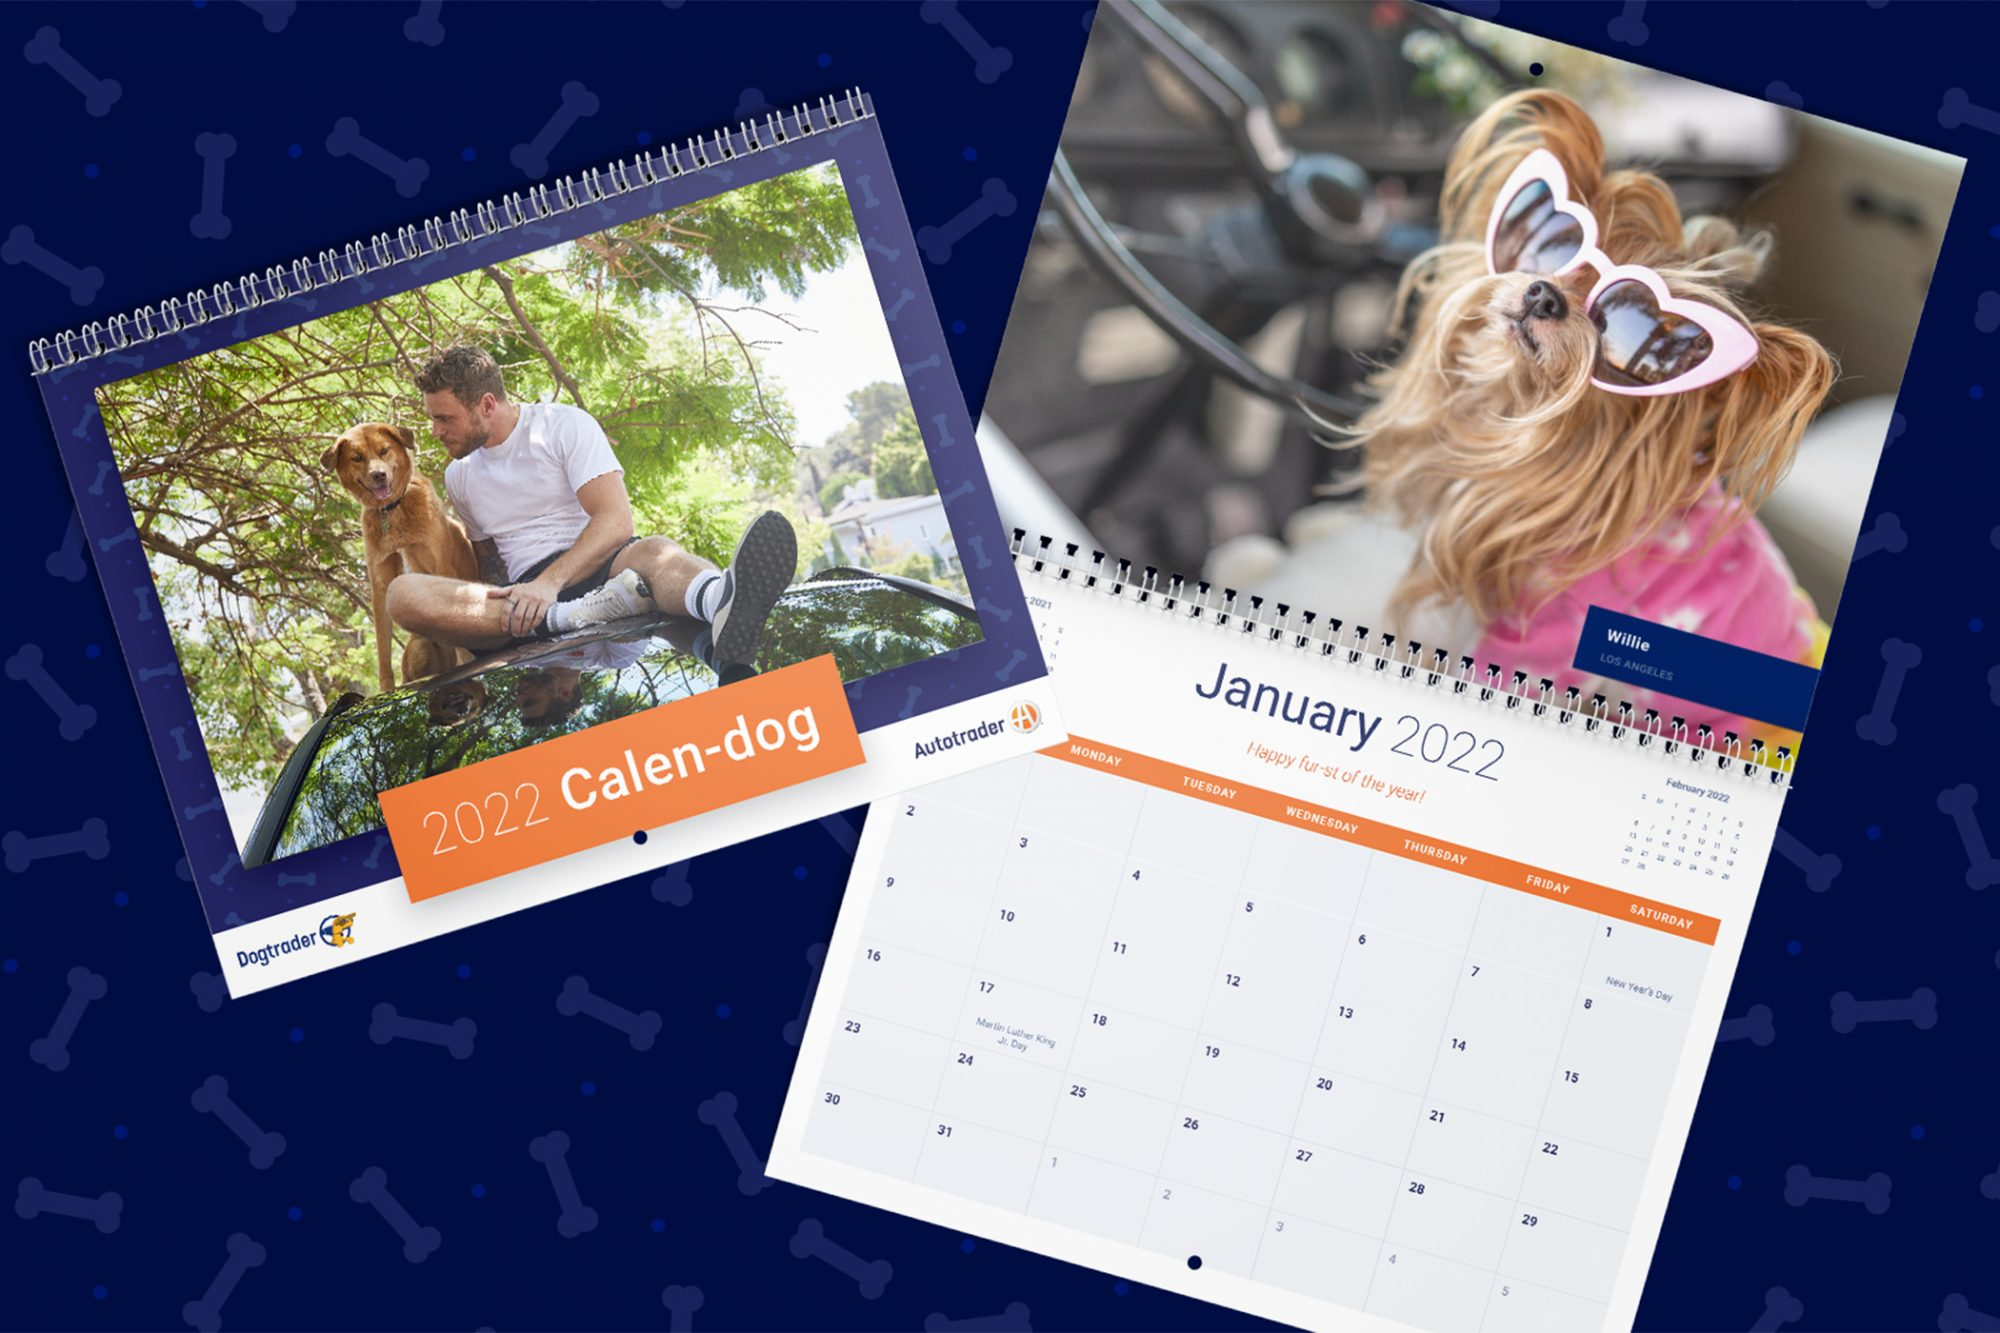 Gus Kenworthy and Birdie on the cover of a calendar